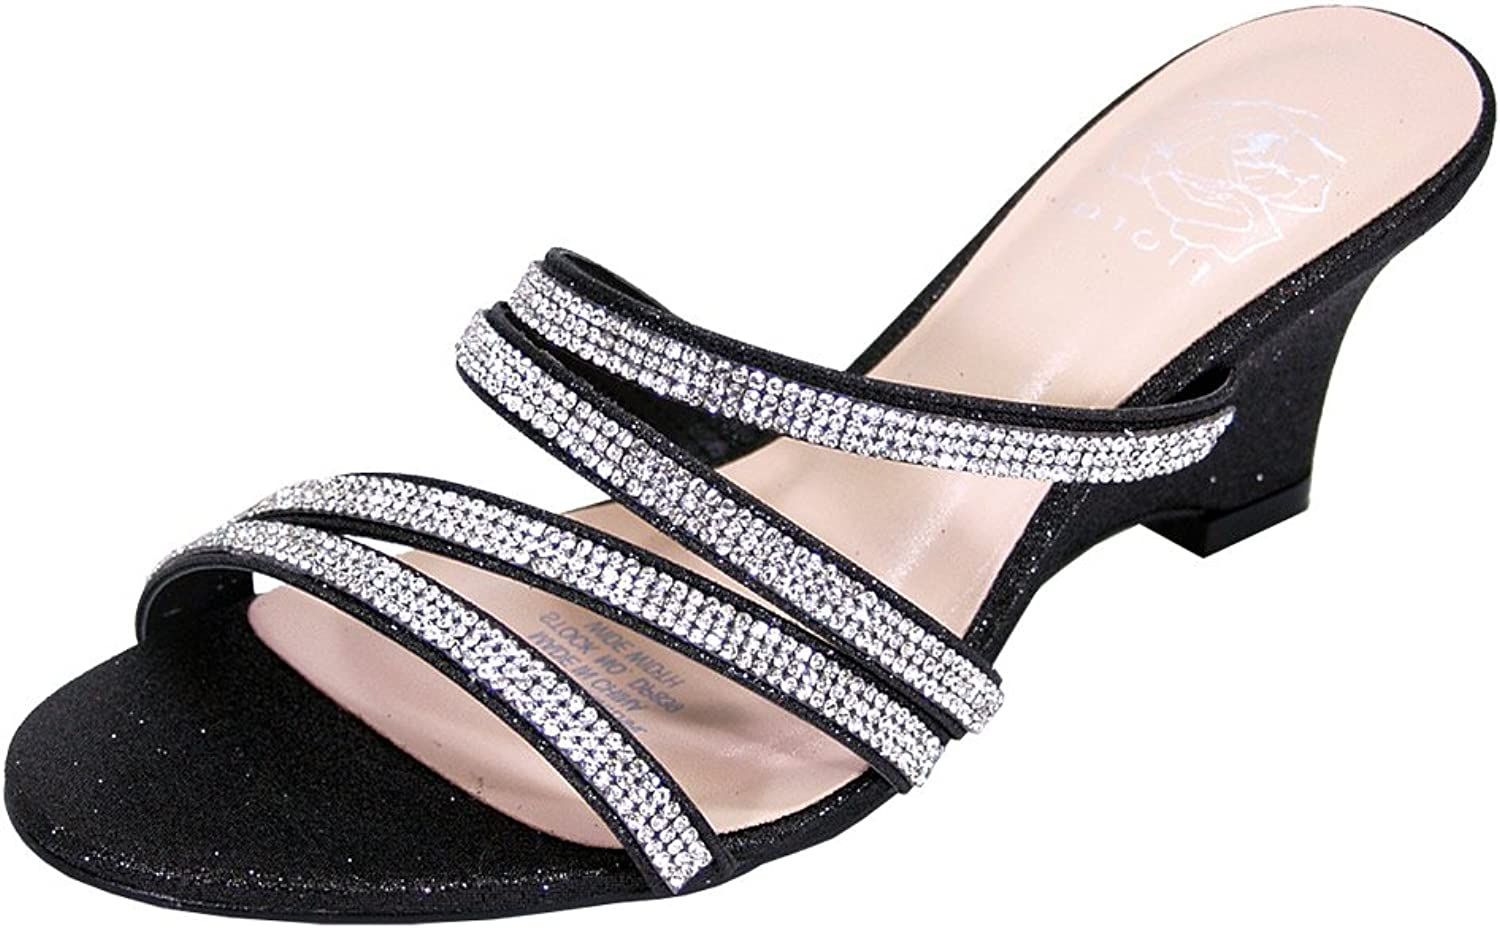 Floral Kelly Women Wide Width Rhinestone Strappy Slip On Wedge Heeled Party Sandals (Size Measurement)